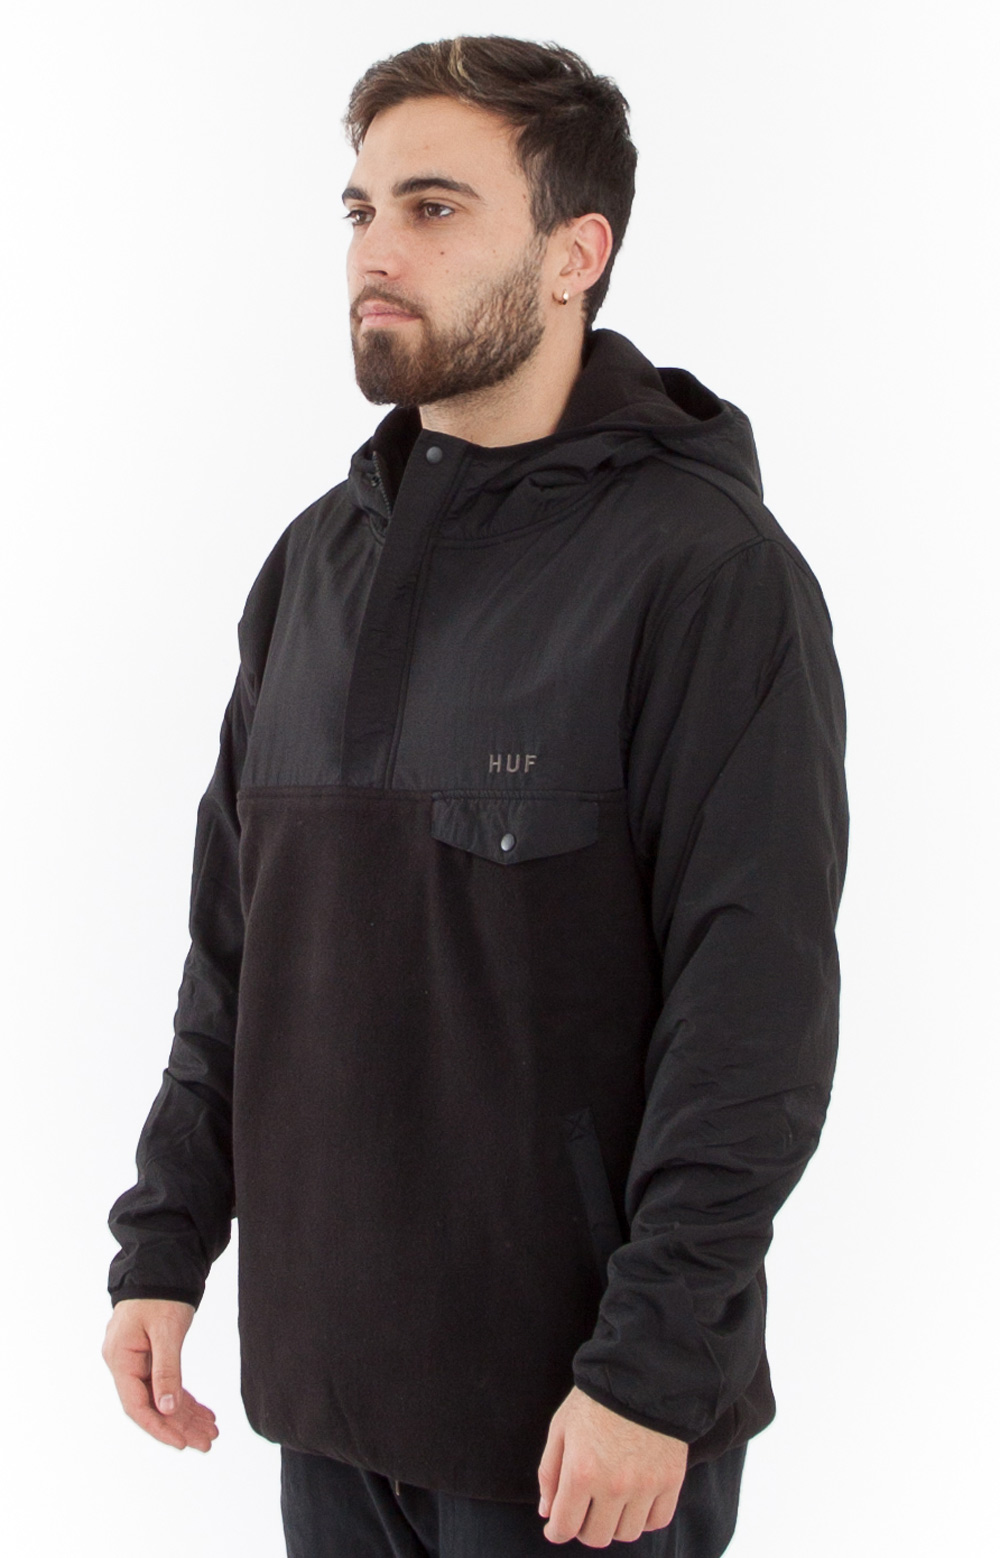 Huf, Muir Hooded Pullover Jacket - Black - HUF - MLTD